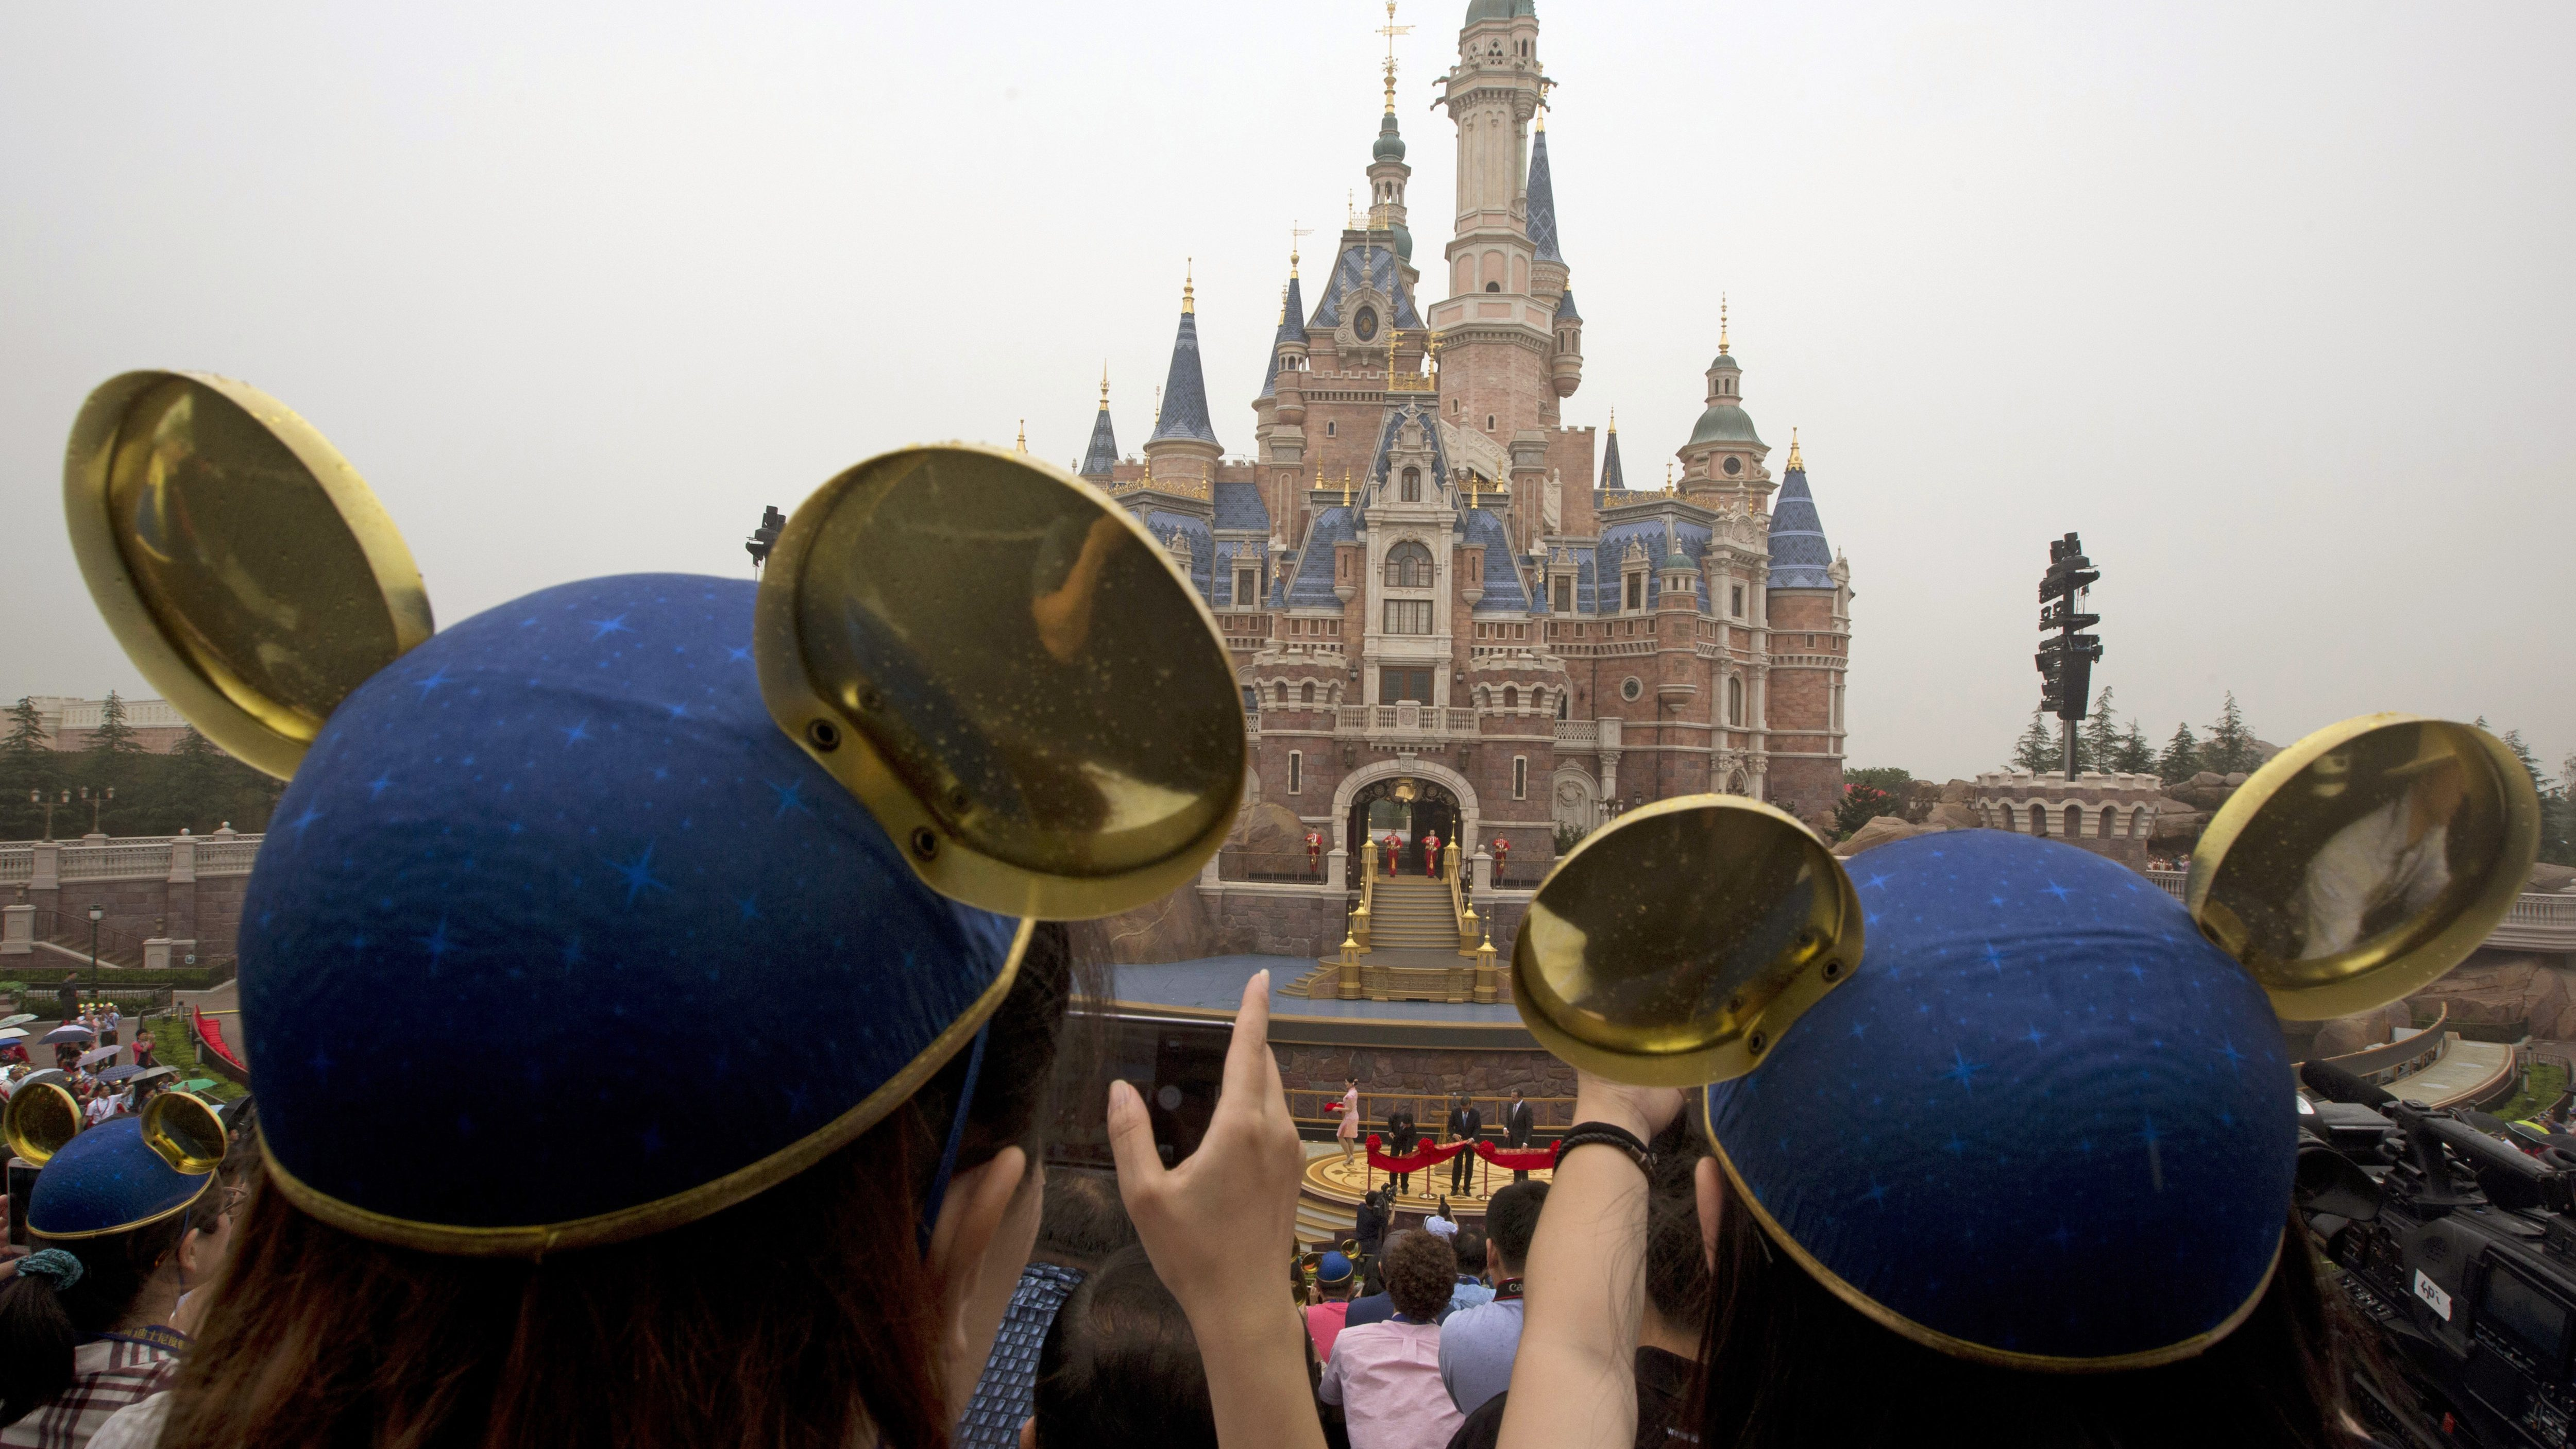 Visitors wearing Mickey hats take photos of Shanghai Mayor Han Zheng, left, Chinese Vice Premier Wang Yang, center, and Disney CEO Bob Iger preparing to cut the red ribbon during the opening ceremony for the Disney Resort in Shanghai, China, Thursday, June 16, 2016. Walt Disney Co. opened its first theme park in mainland China on Thursday at a ceremony that mixed speeches by Communist Party officials, a Chinese children's choir and actors dressed as Sleeping Beauty and other Disney characters. (AP Photo/Ng Han Guan)